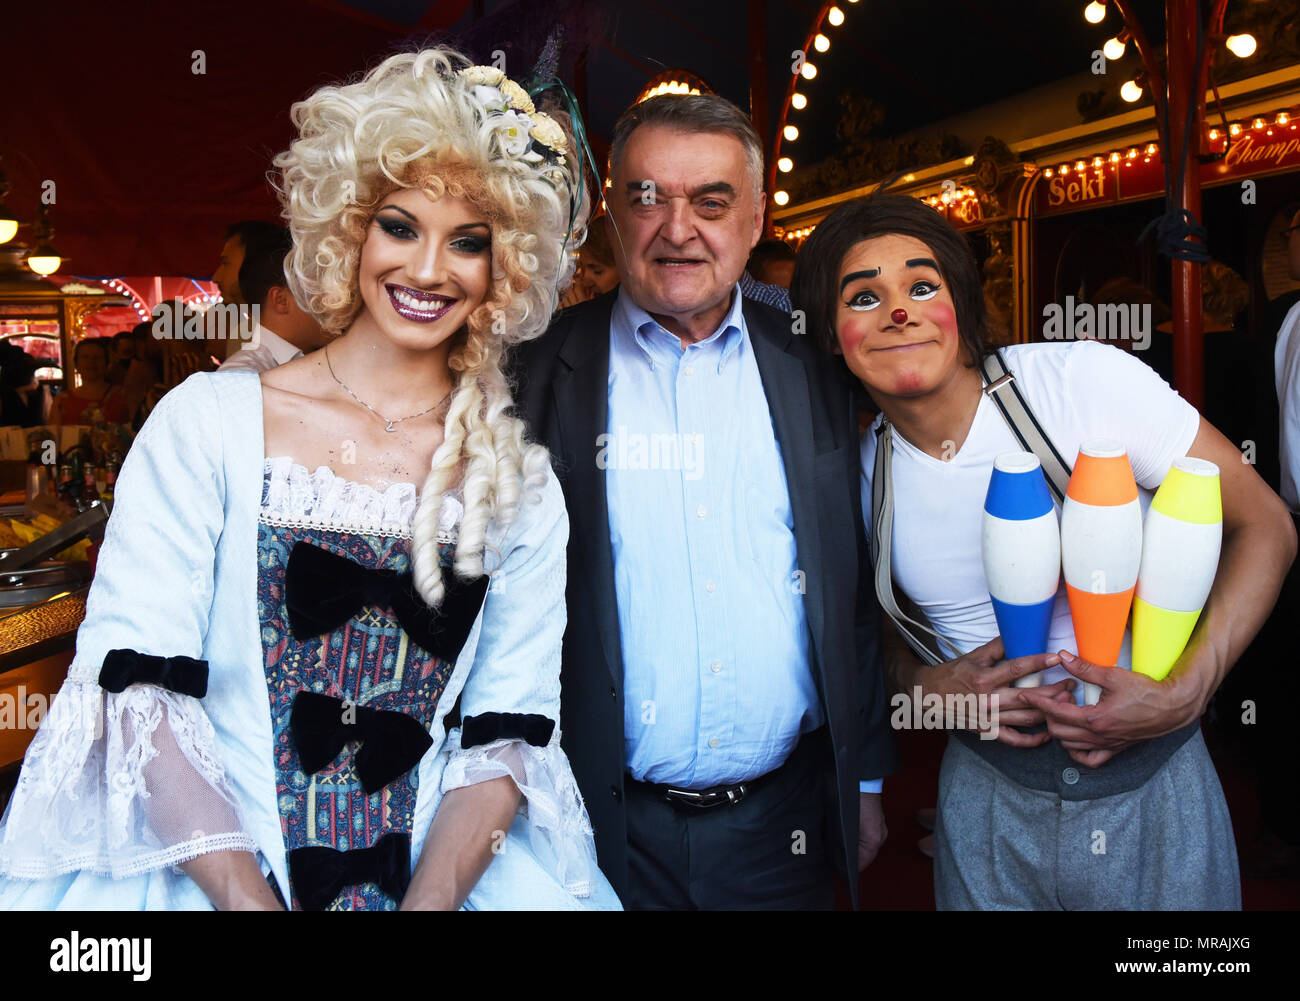 25 May 2018, Germany, Duesseldorf: North Rhine-Westphalia's Interior Minister Herbert Reul (C) is greeted by a receptionist and Chisterrin the clown in the evening of the Circus Roncalli's premiere at the Rheinpark, which is featuring the programme 'Storyteller: Yesterday-Today-Tomorrow'. Clowns, magicians and performers will be able to enthrall circus lovers from 25 May until 24 July 2018. However, animals such as horses, elephants and fish will only participate as holograms. Photo: Horst Ossinger//dpa - Stock Image